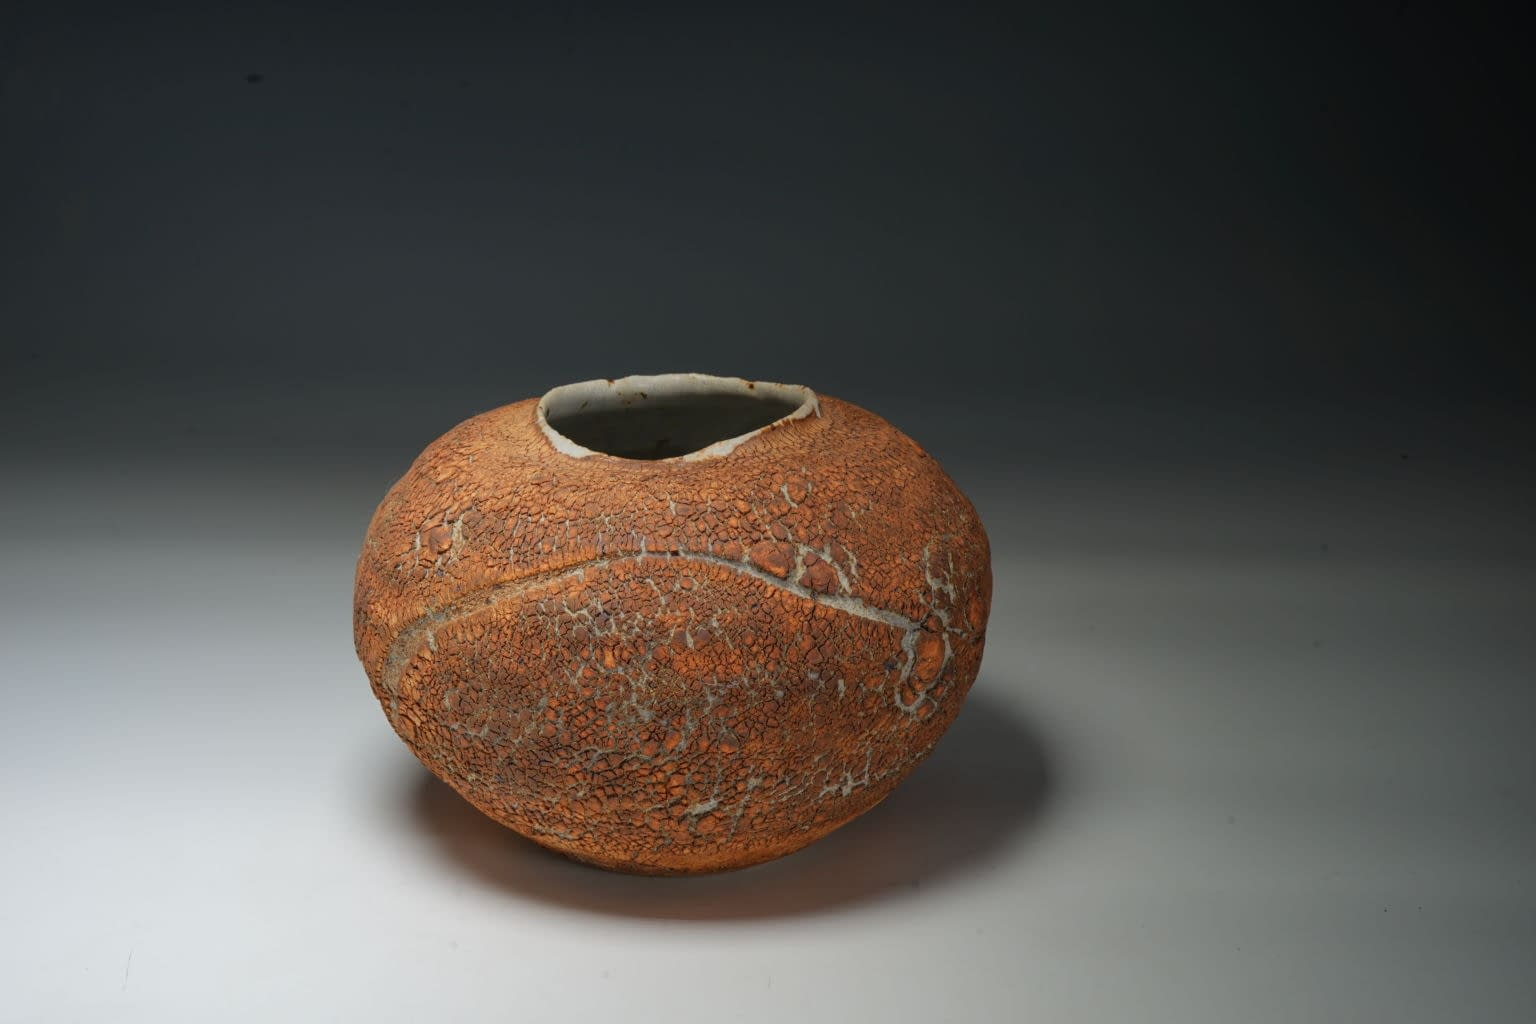 Ikebana Planting vase /container. in Natural texture earth crust stoneware